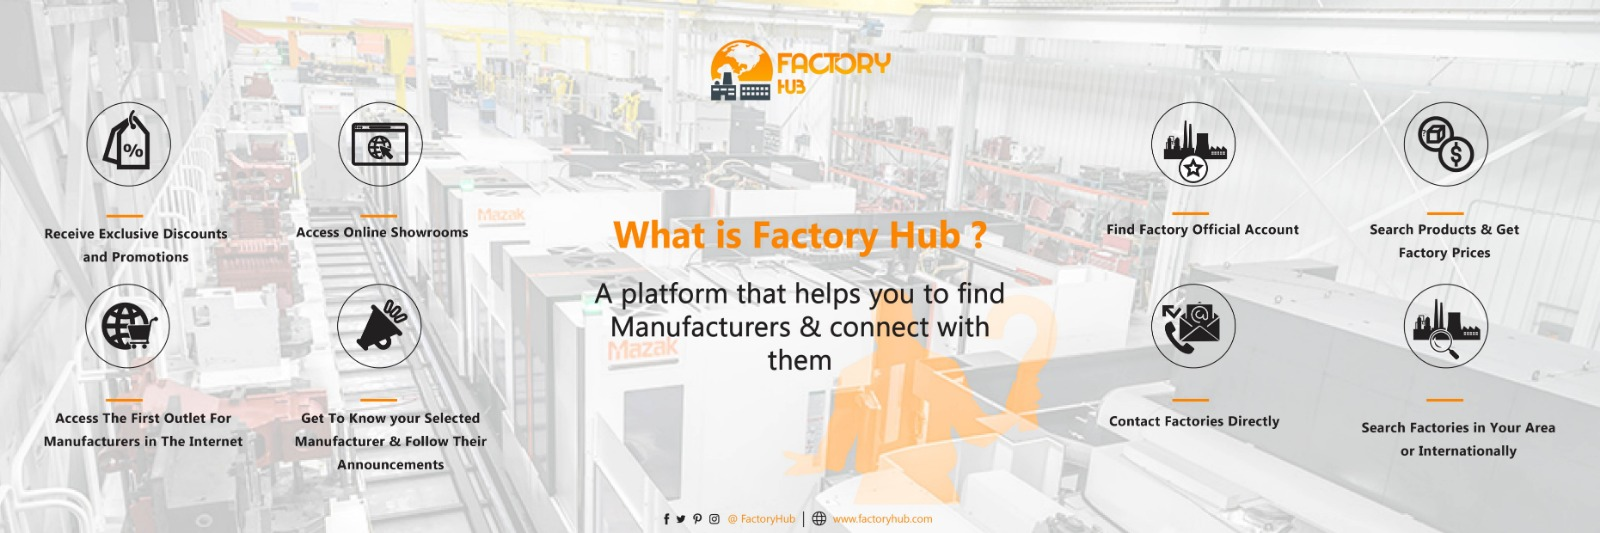 What is Factory Hub